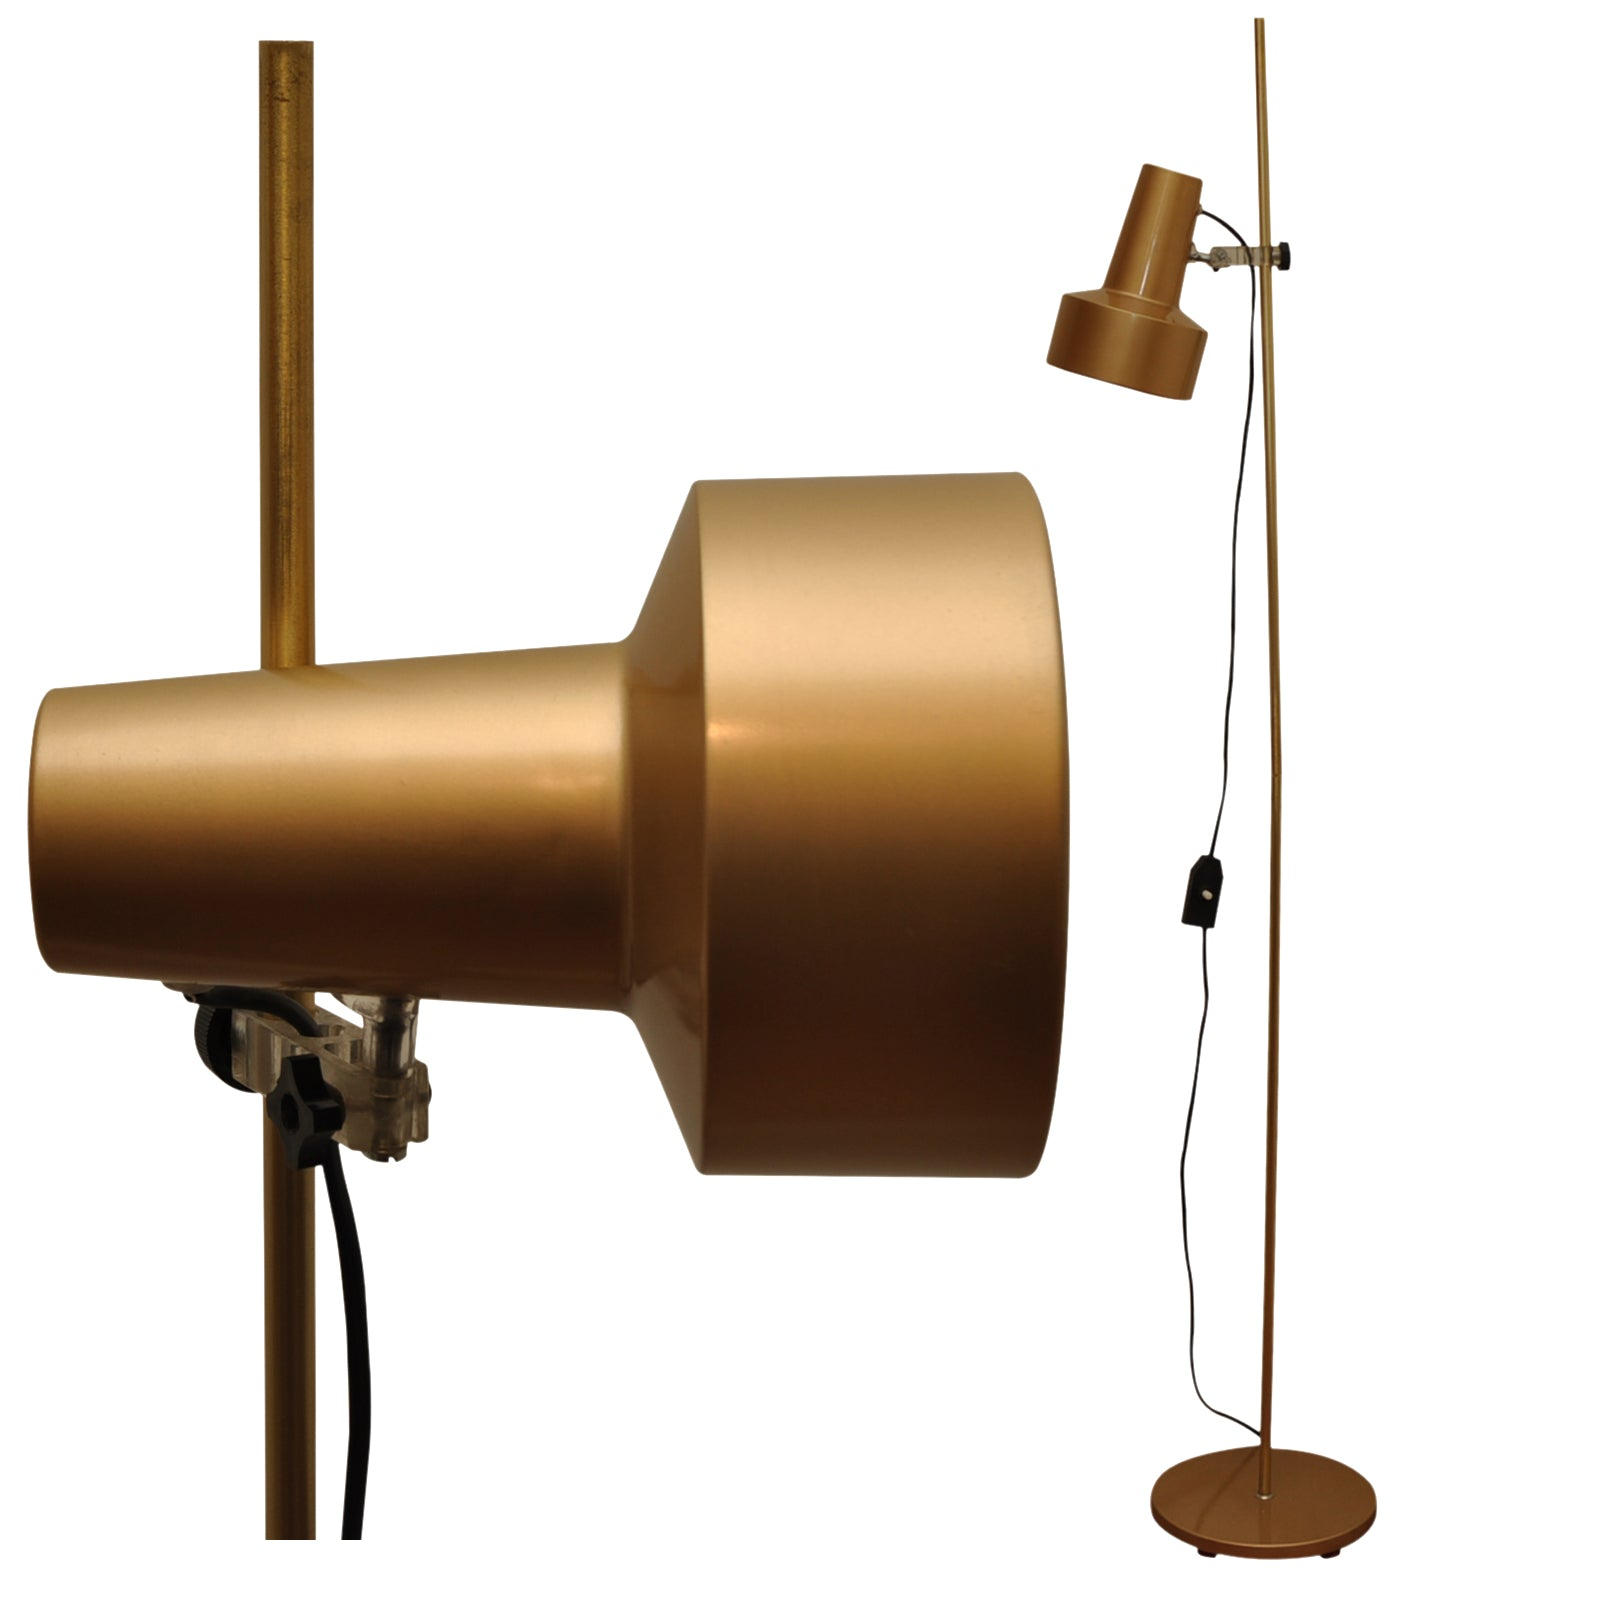 Swedish A G Belid style brass adjustable floor spot lamp